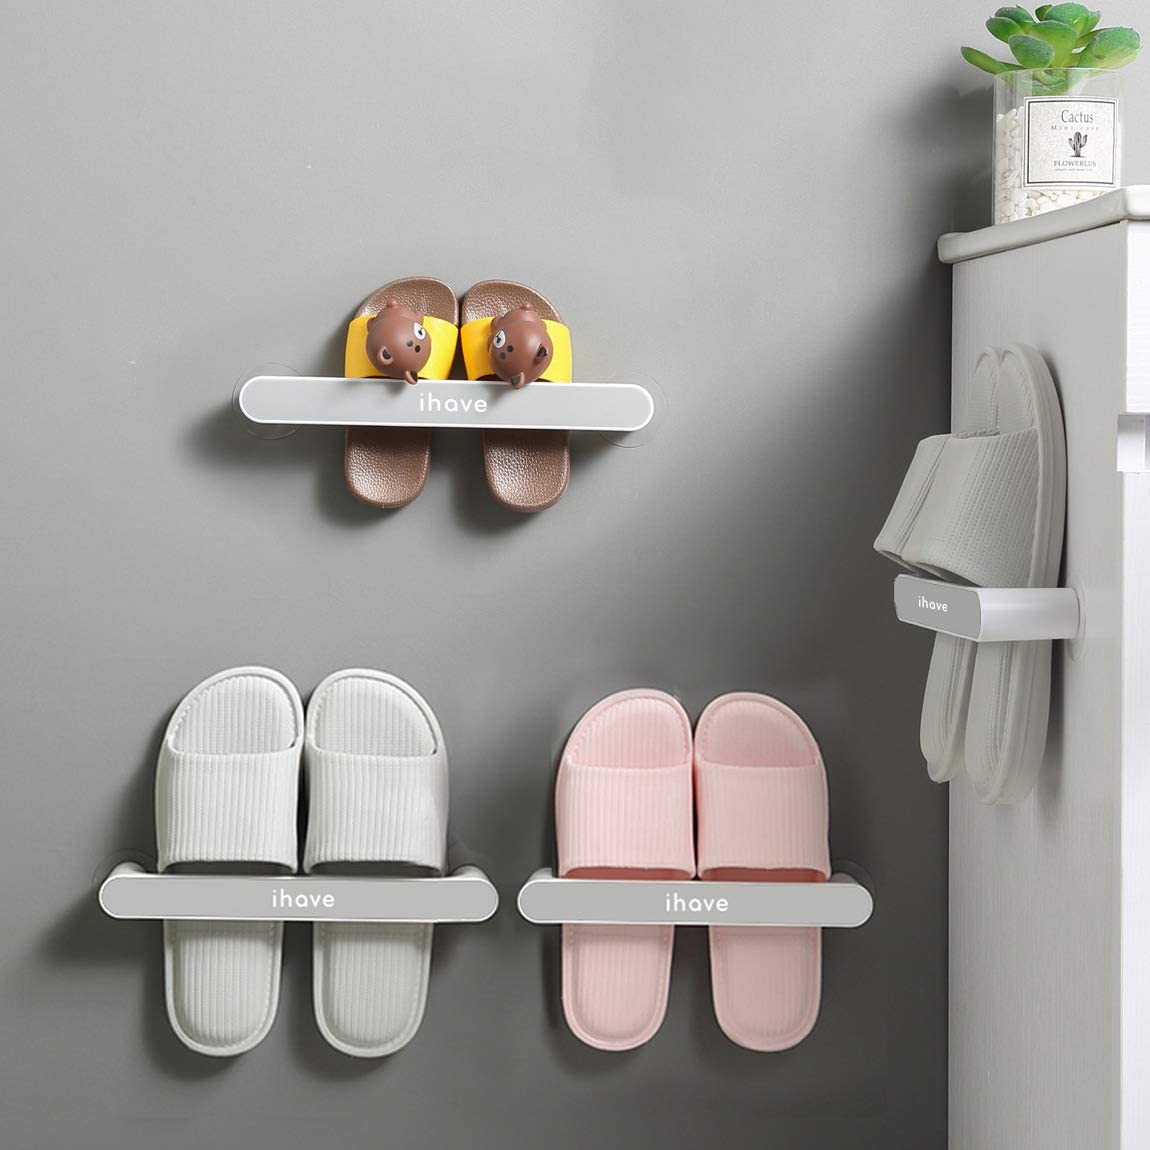 iHave Wall Mounted Shoe Rack Door for Premiu Super special price Colorado Springs Mall Hanging